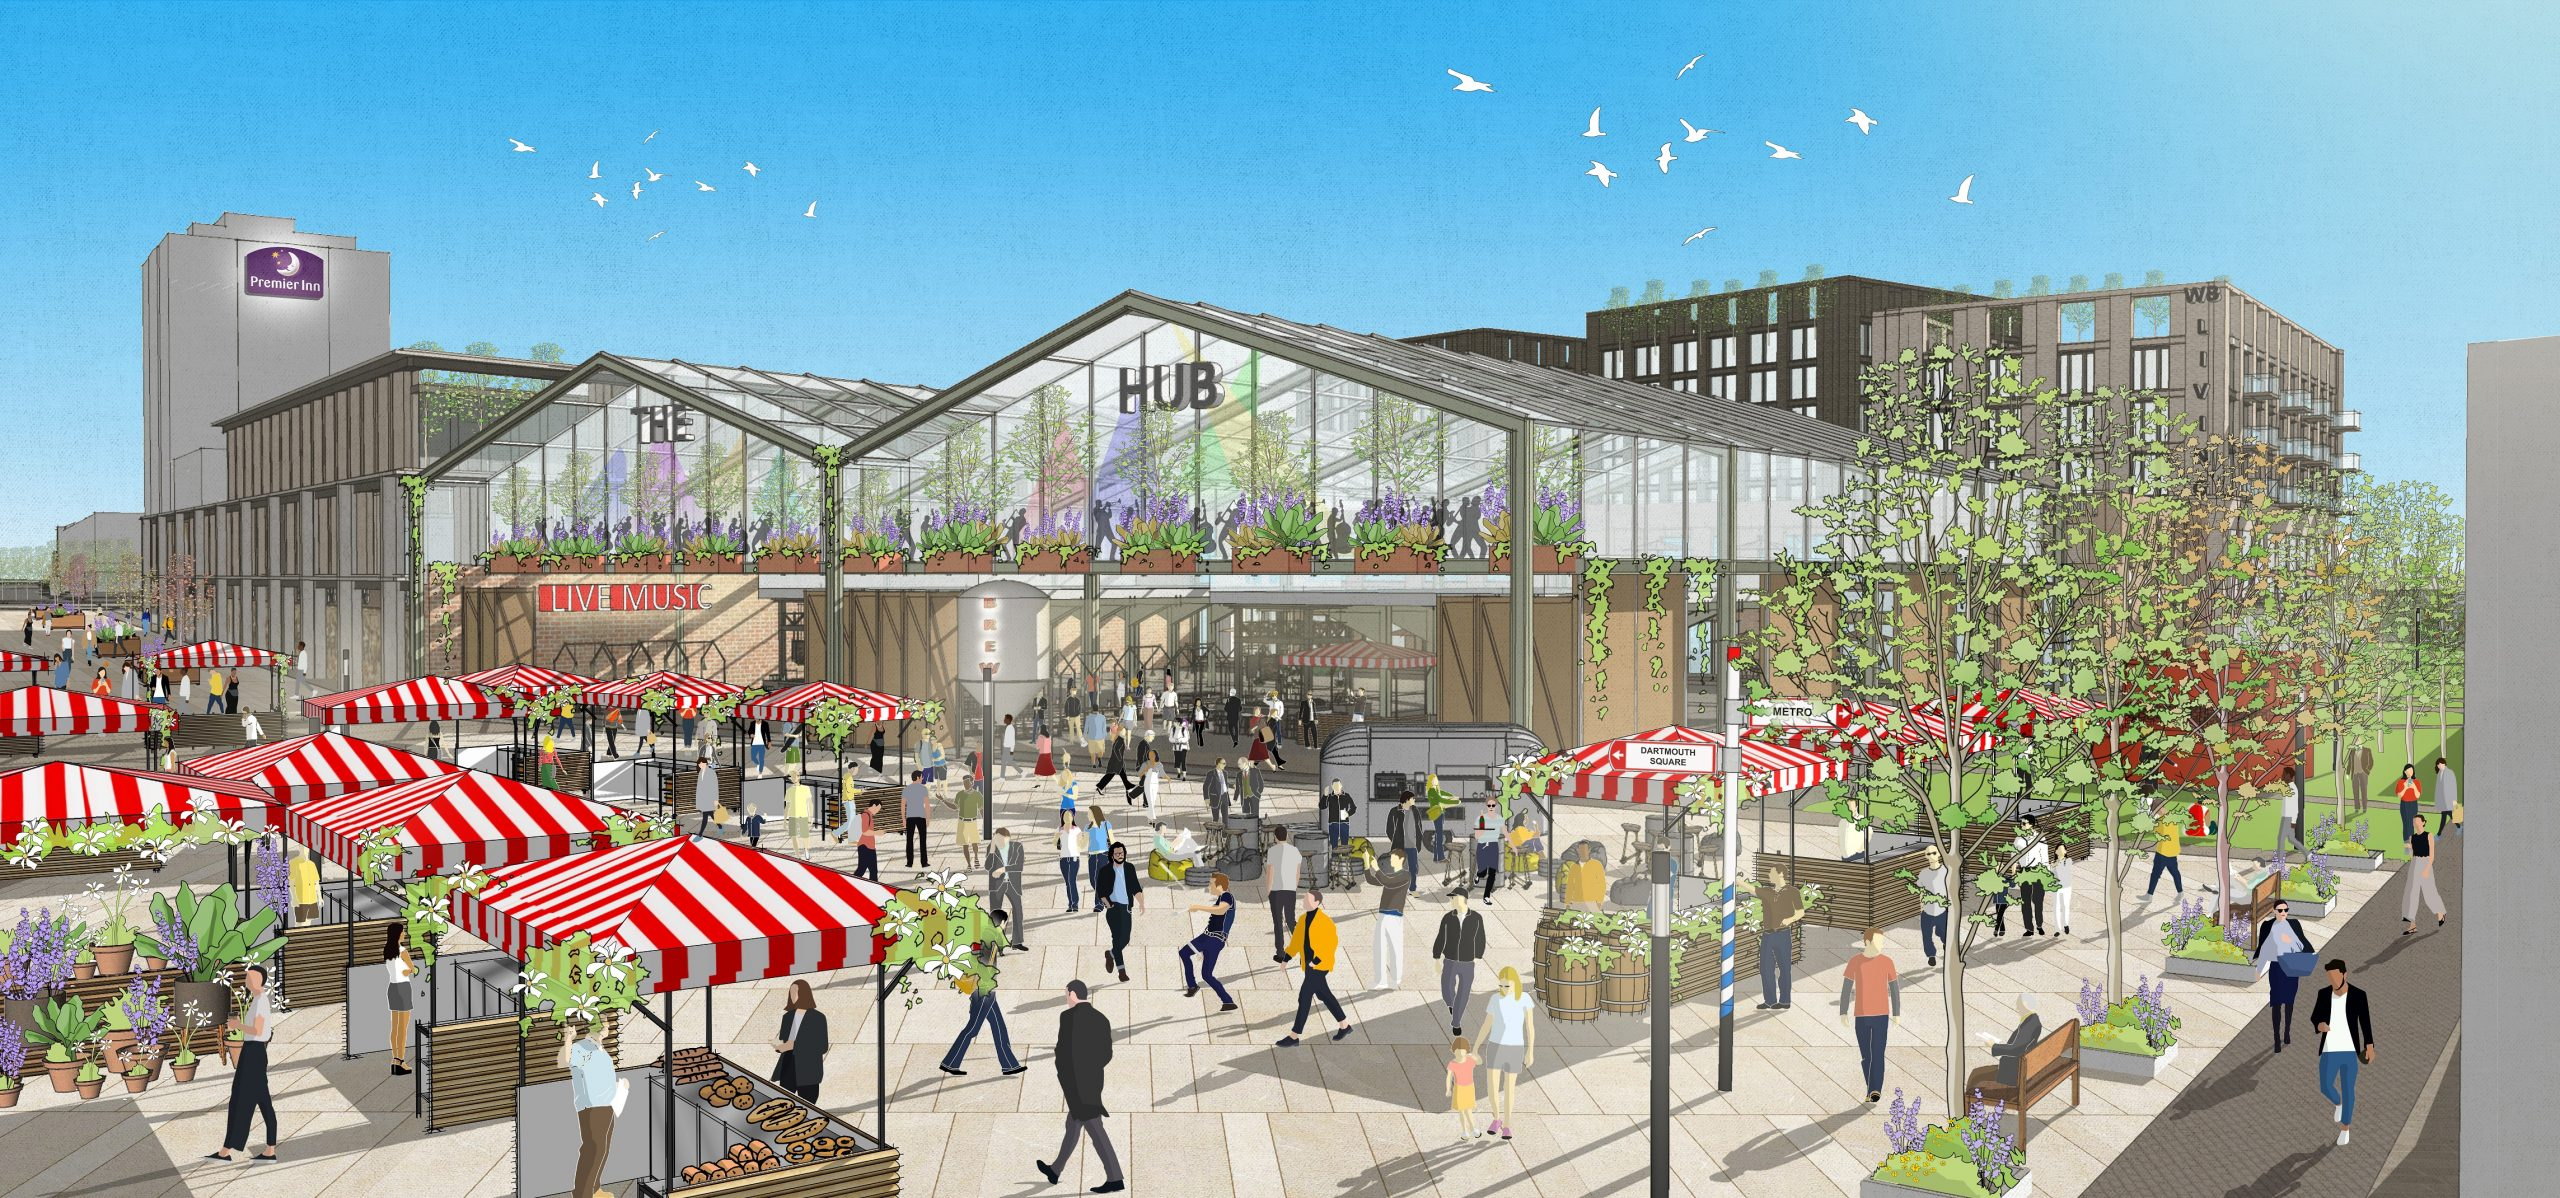 An artist impression of a future regenerated West Bromwich